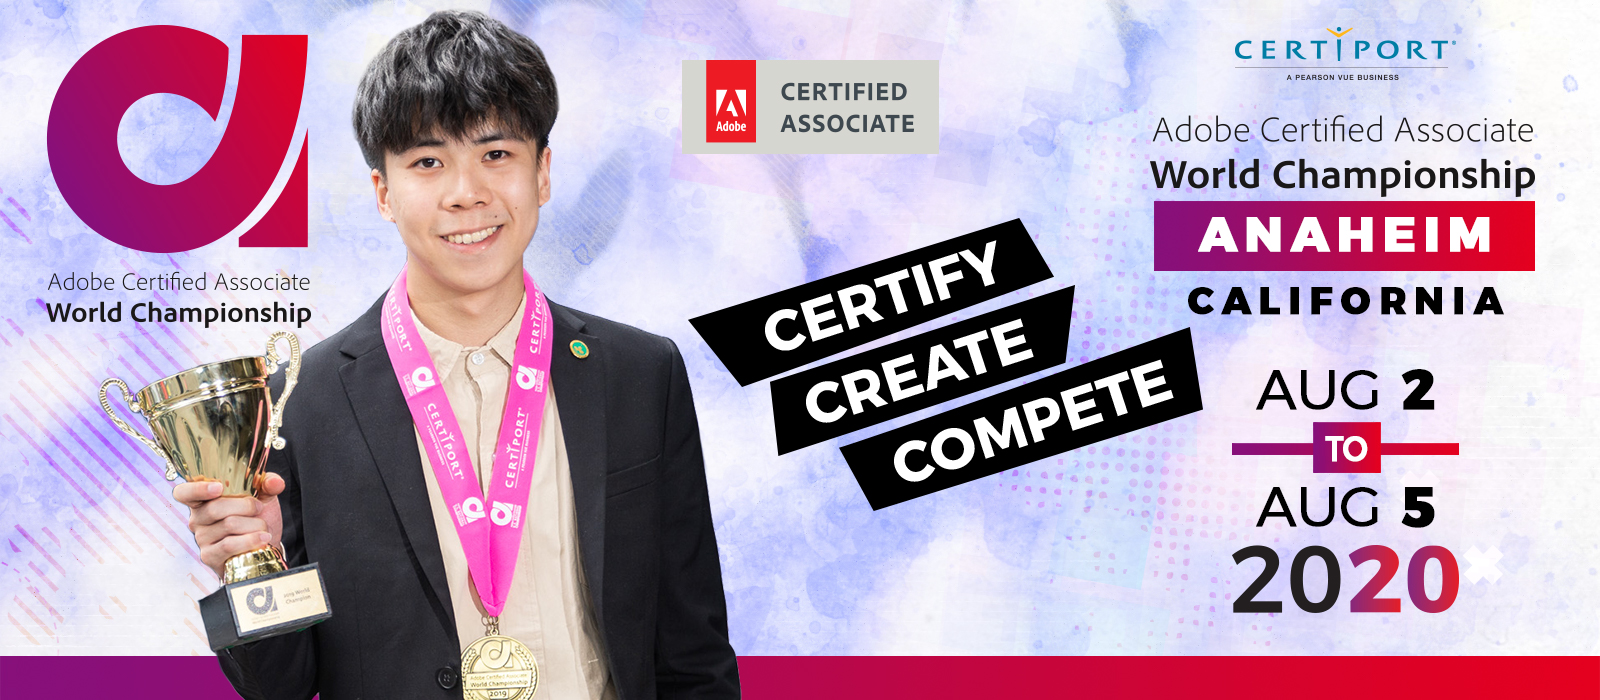 Adobe Certified Associate World Championship New York, New York